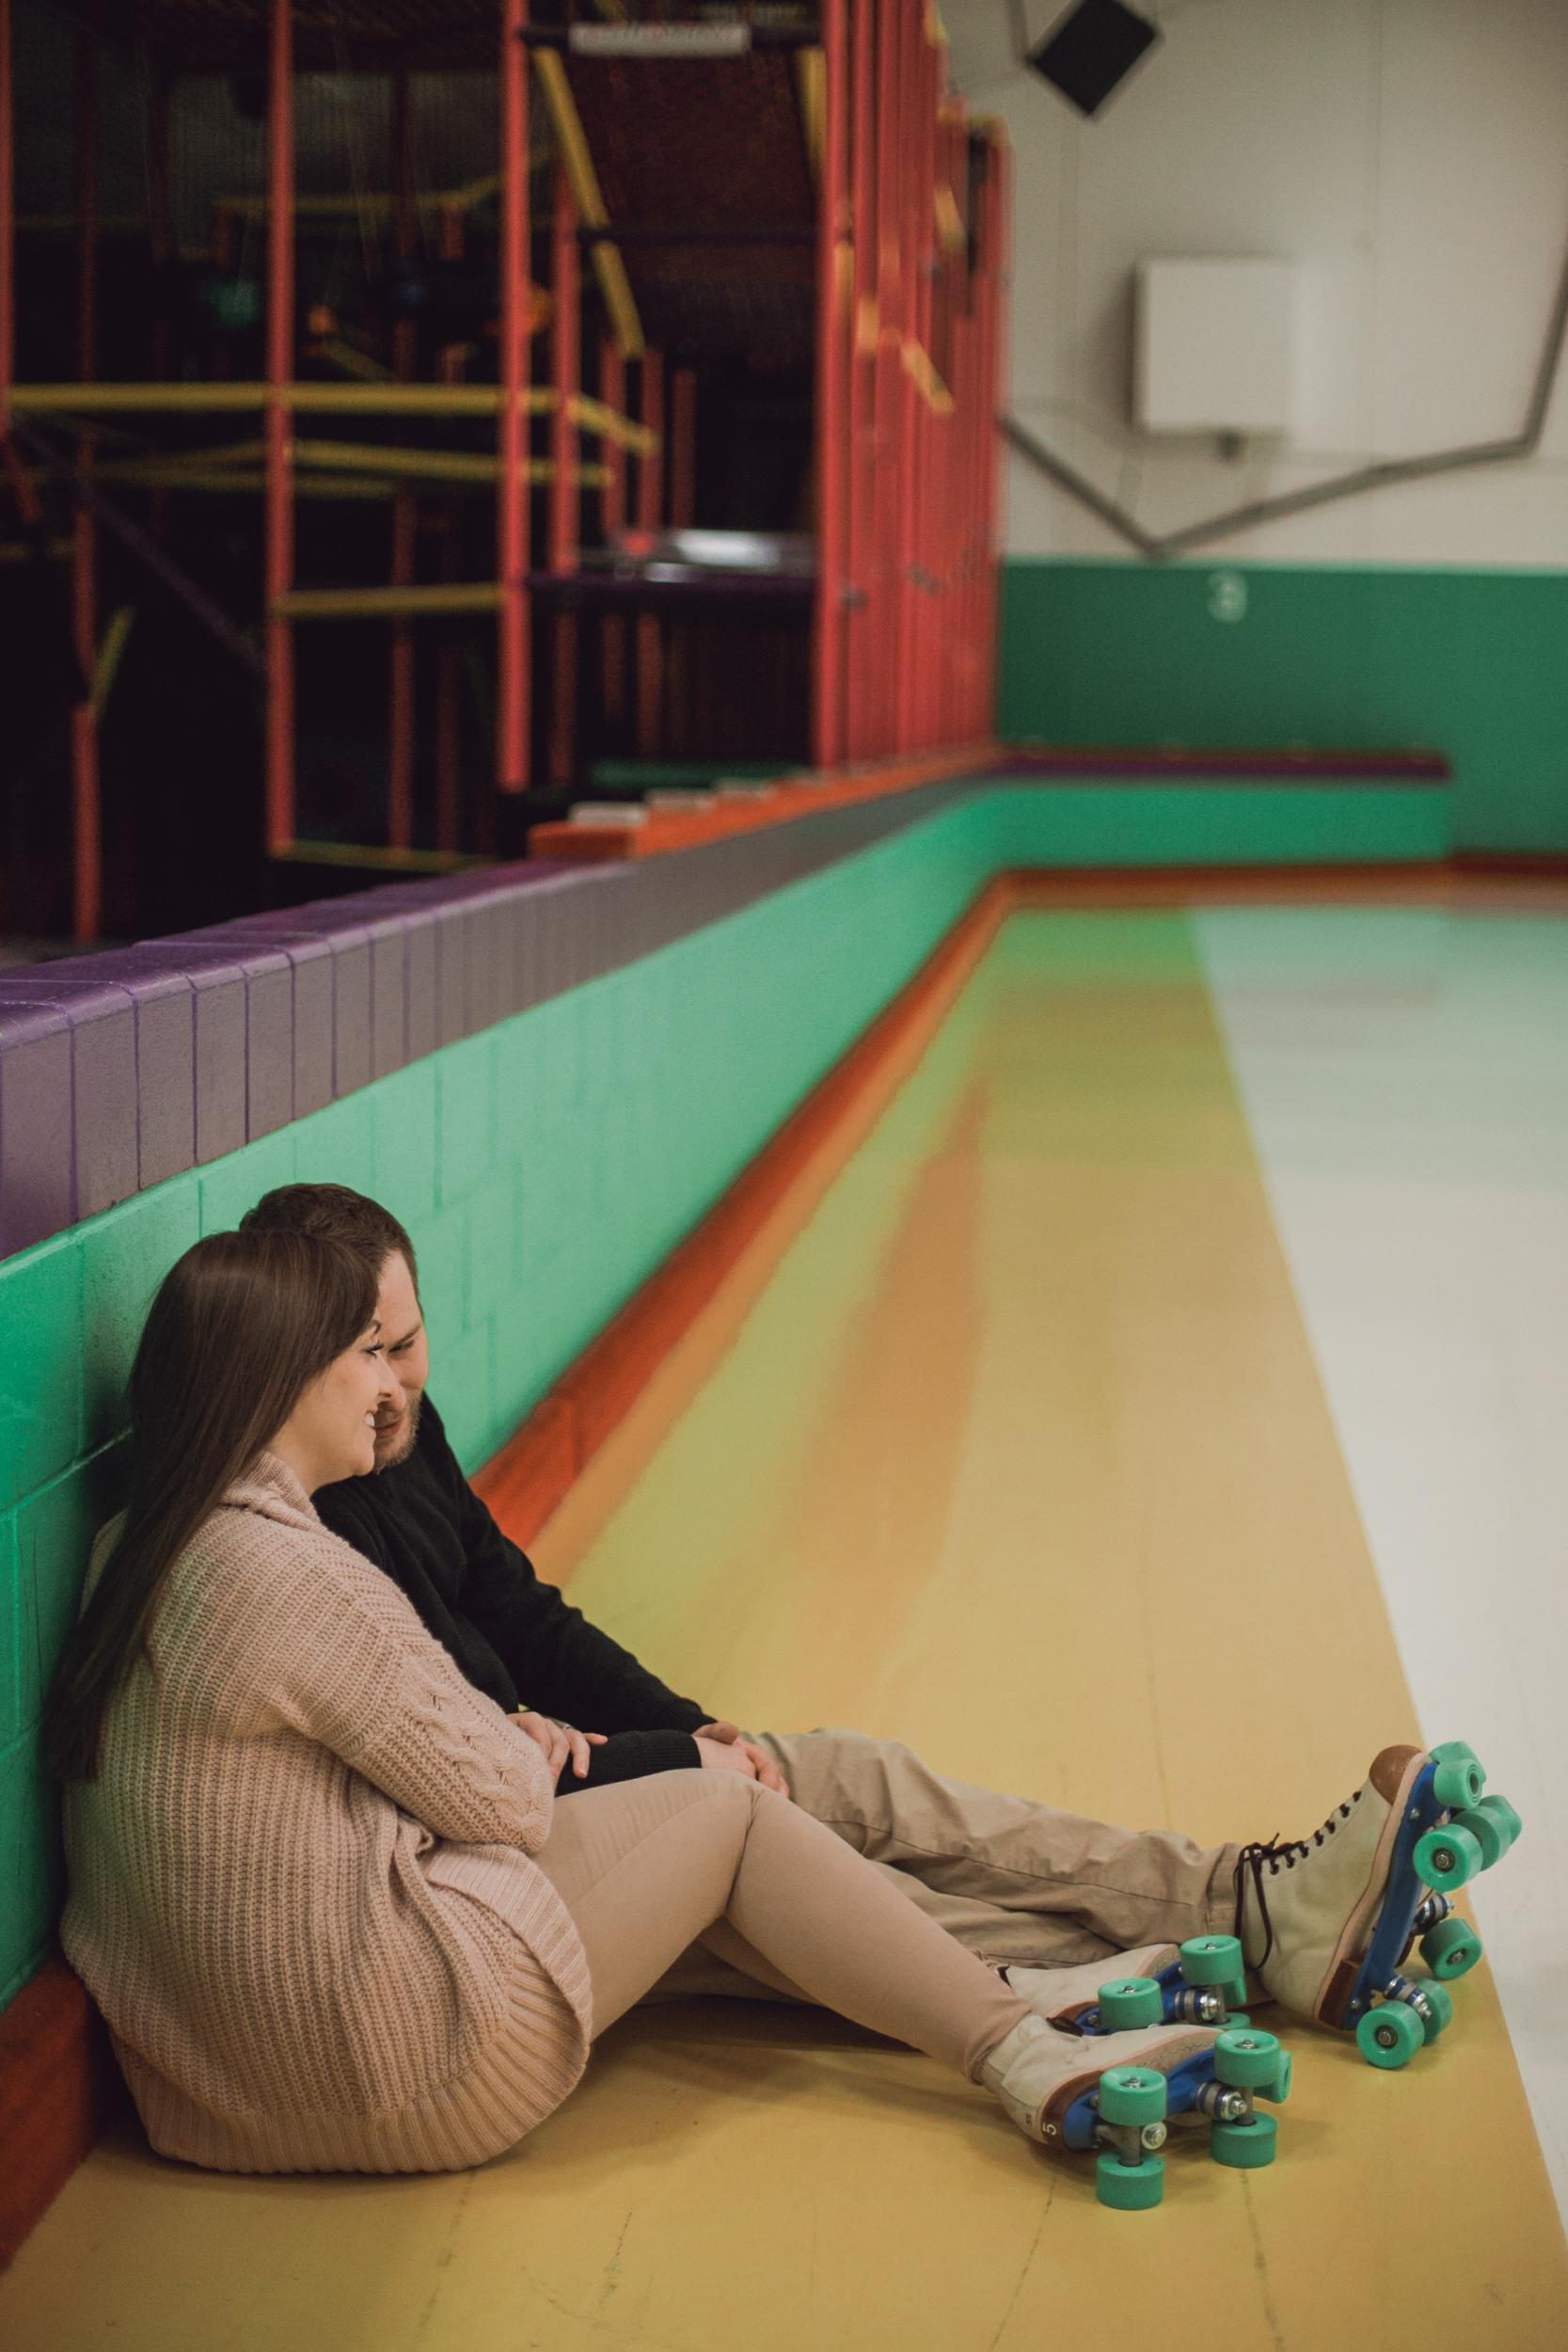 roller rink engagement session, wooddale fun zone engagement session, roller skate engagement session, minneapolis cafe lucrat engagment session, cafe lucrat engagement session, minneapolis minnesota engagement session-www.rachelsmak.com7.jpg